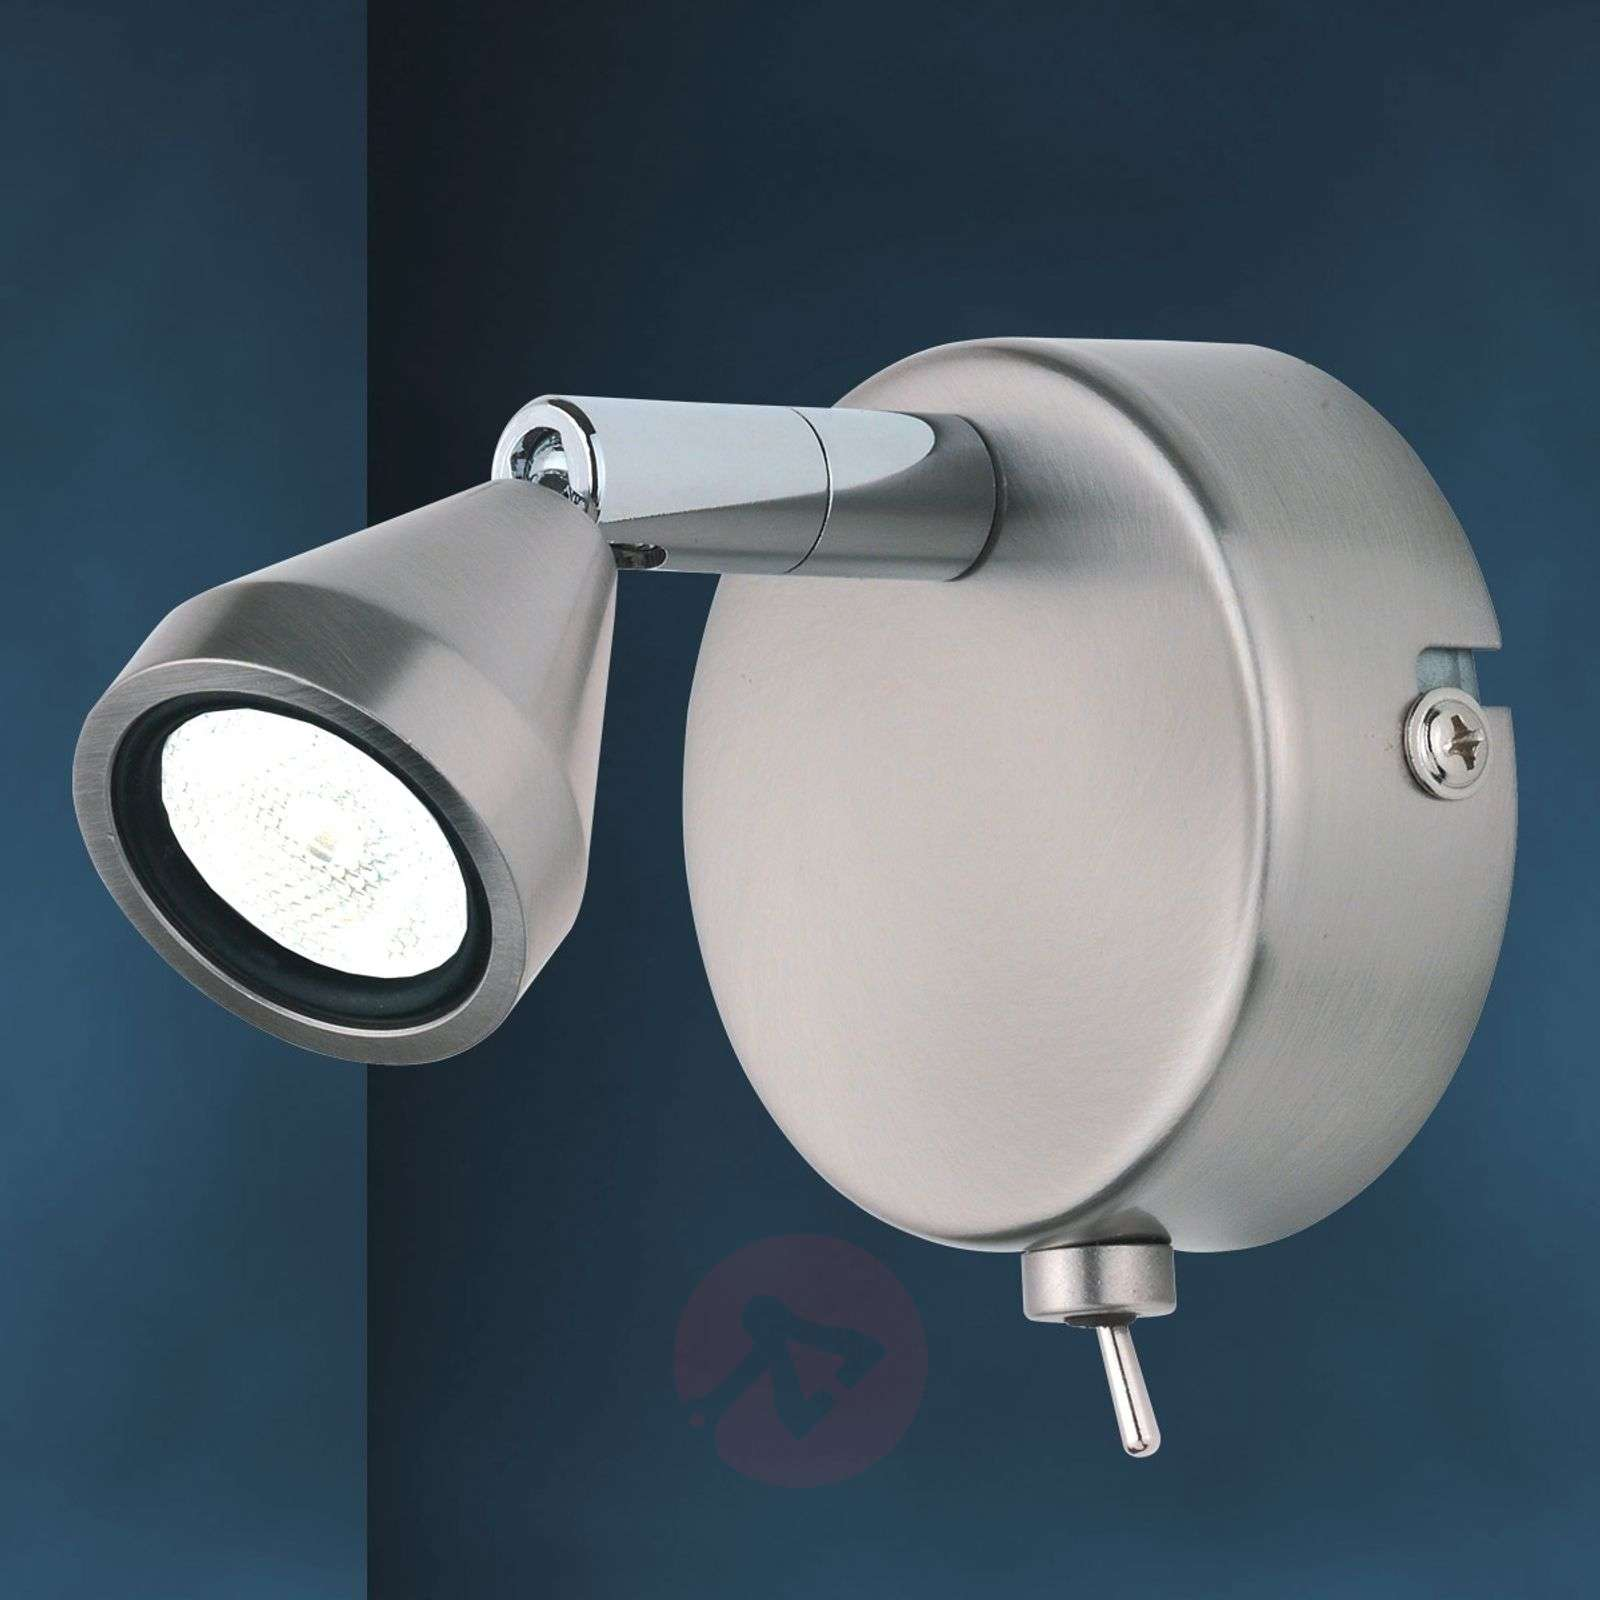 Lampa ścienna LED MINI-1524039X-01